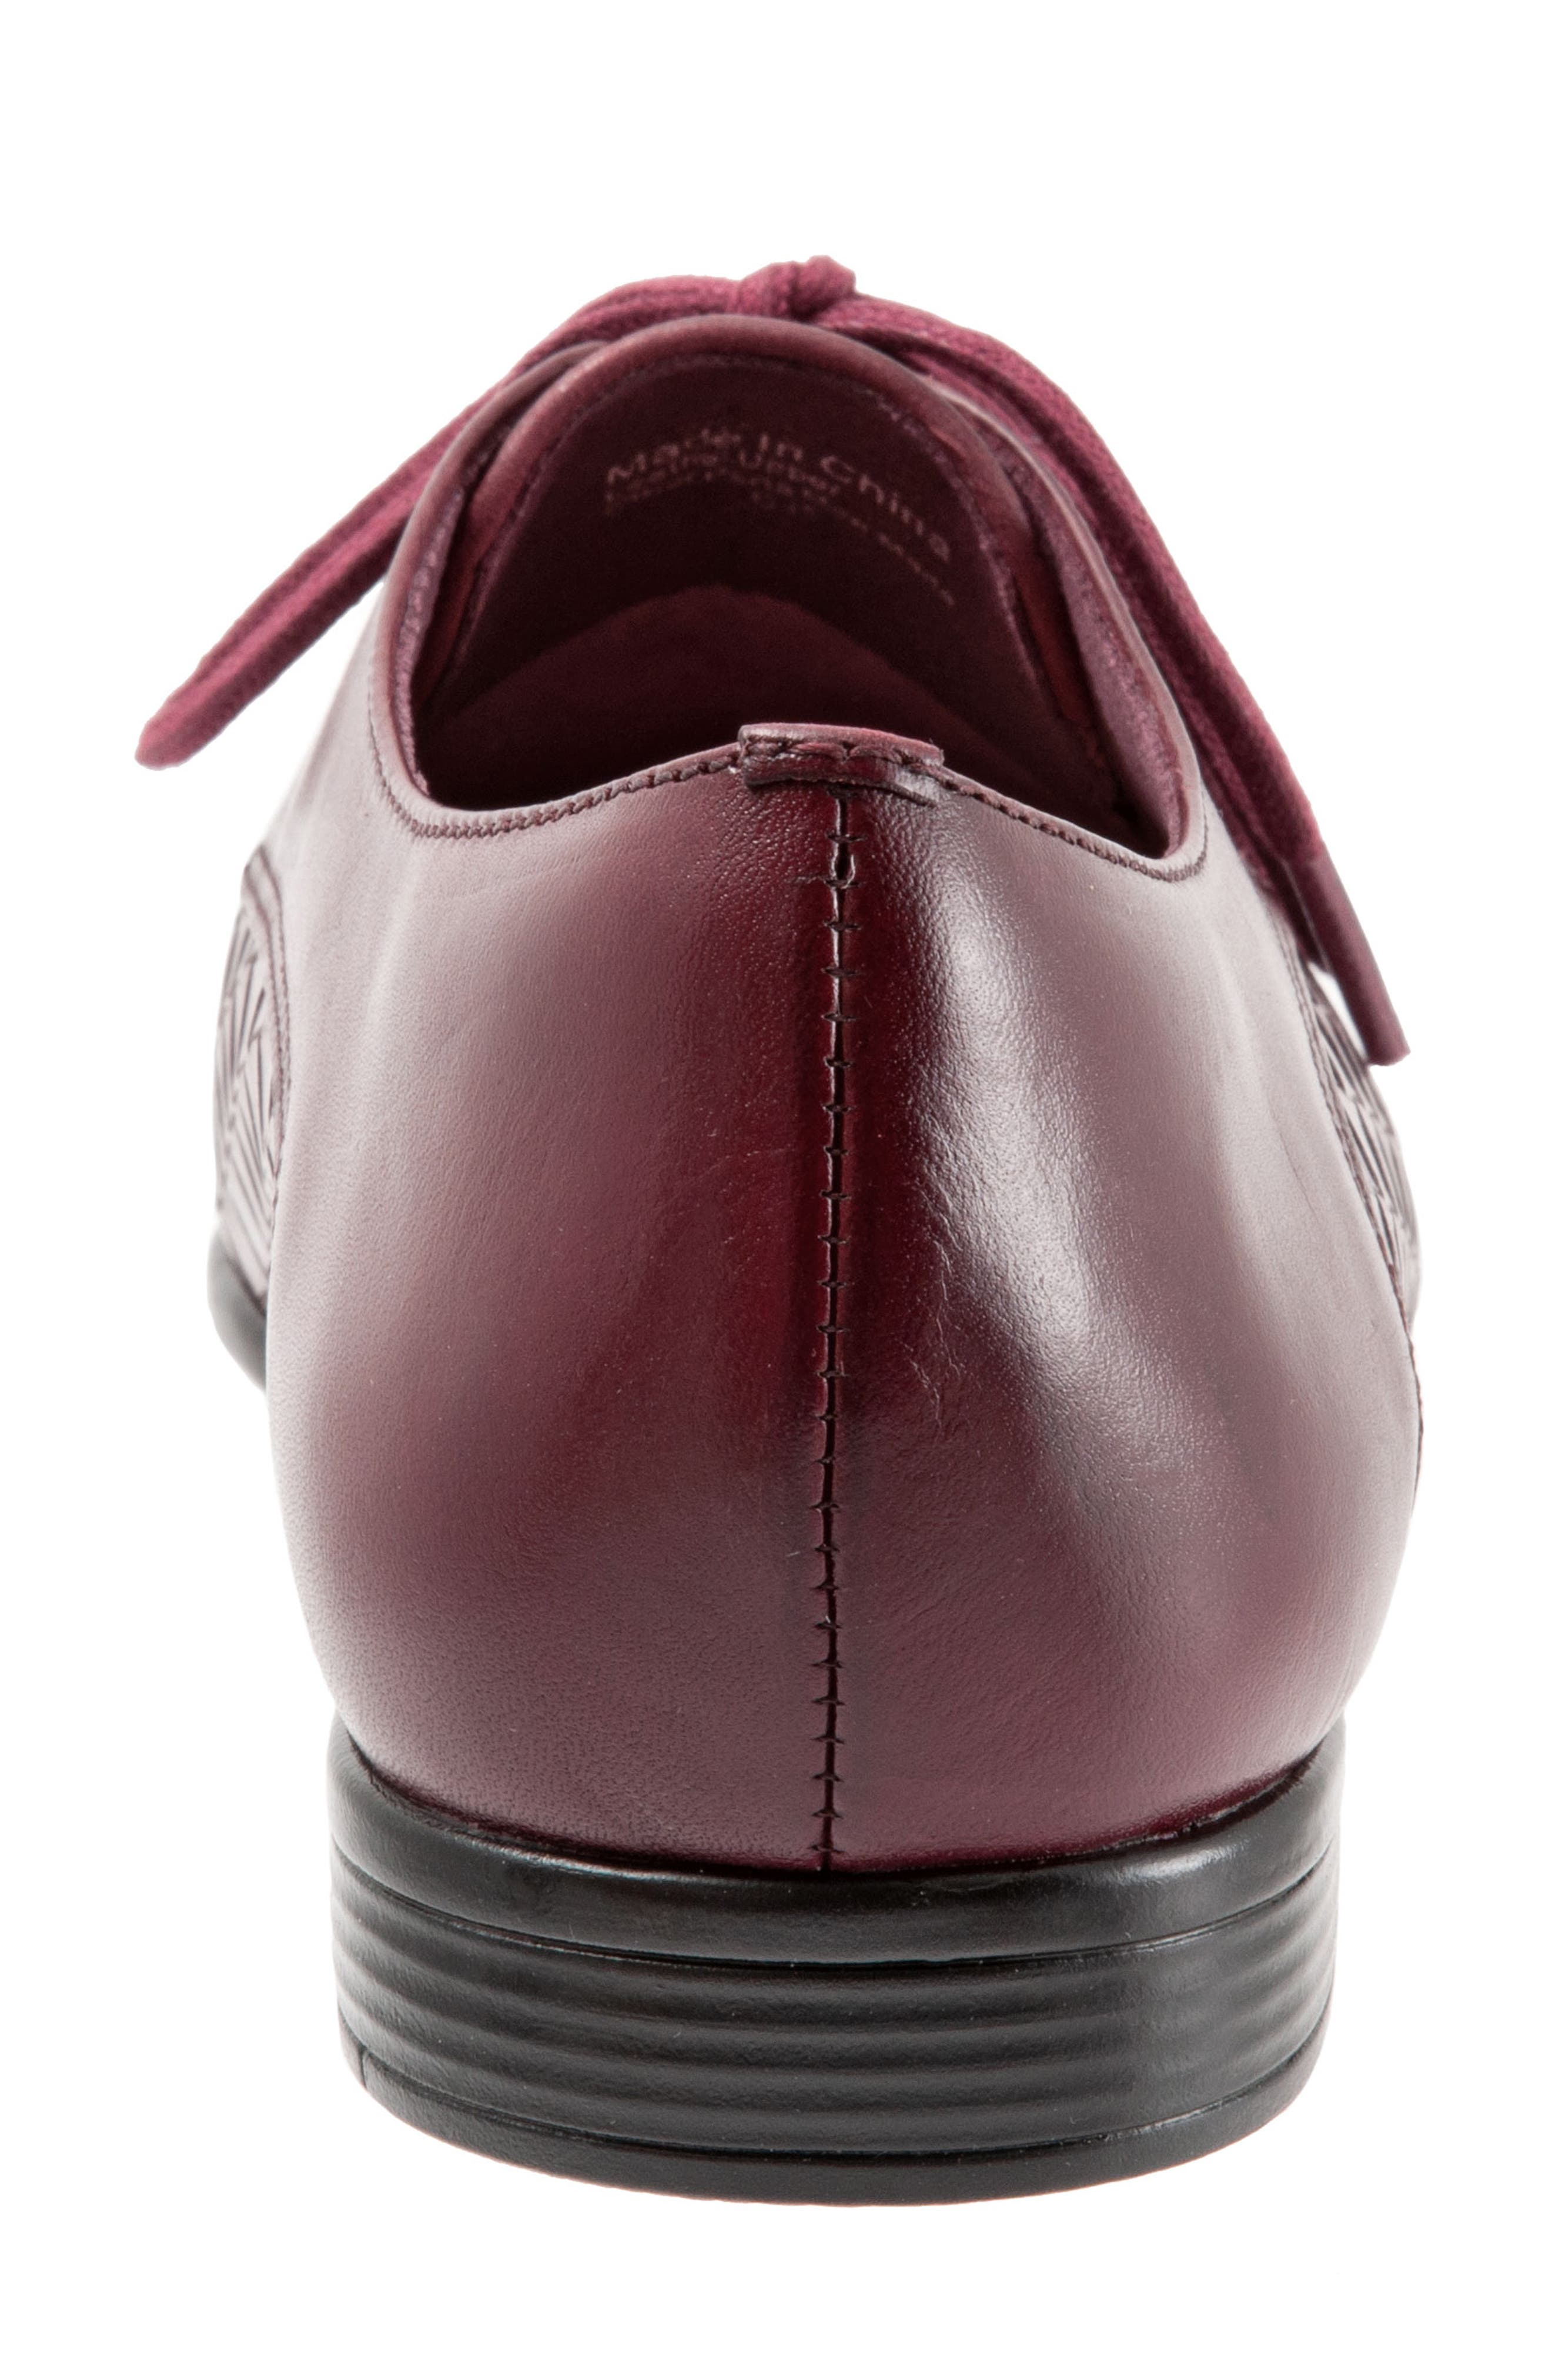 Lizzie Derby Flat,                             Alternate thumbnail 7, color,                             BLACK CHERRY LEATHER